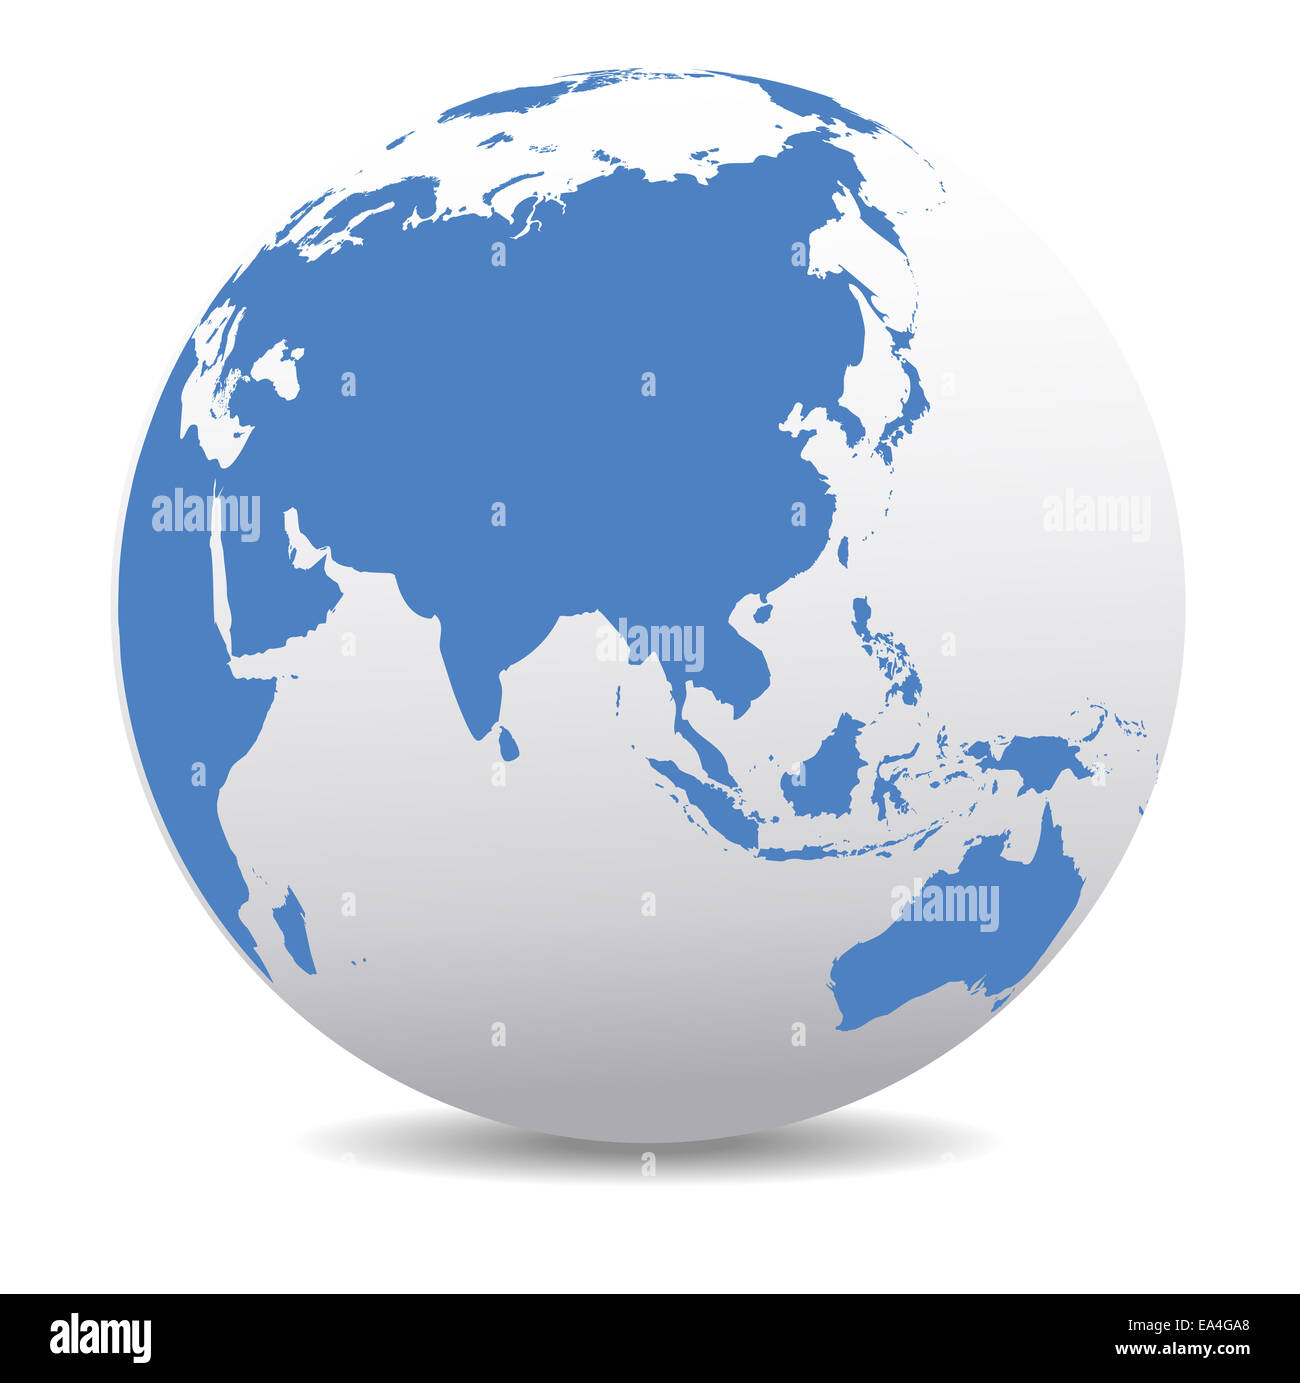 Asia china japan world earth icon globe map stock photo 75088672 asia china japan world earth icon globe map gumiabroncs Image collections